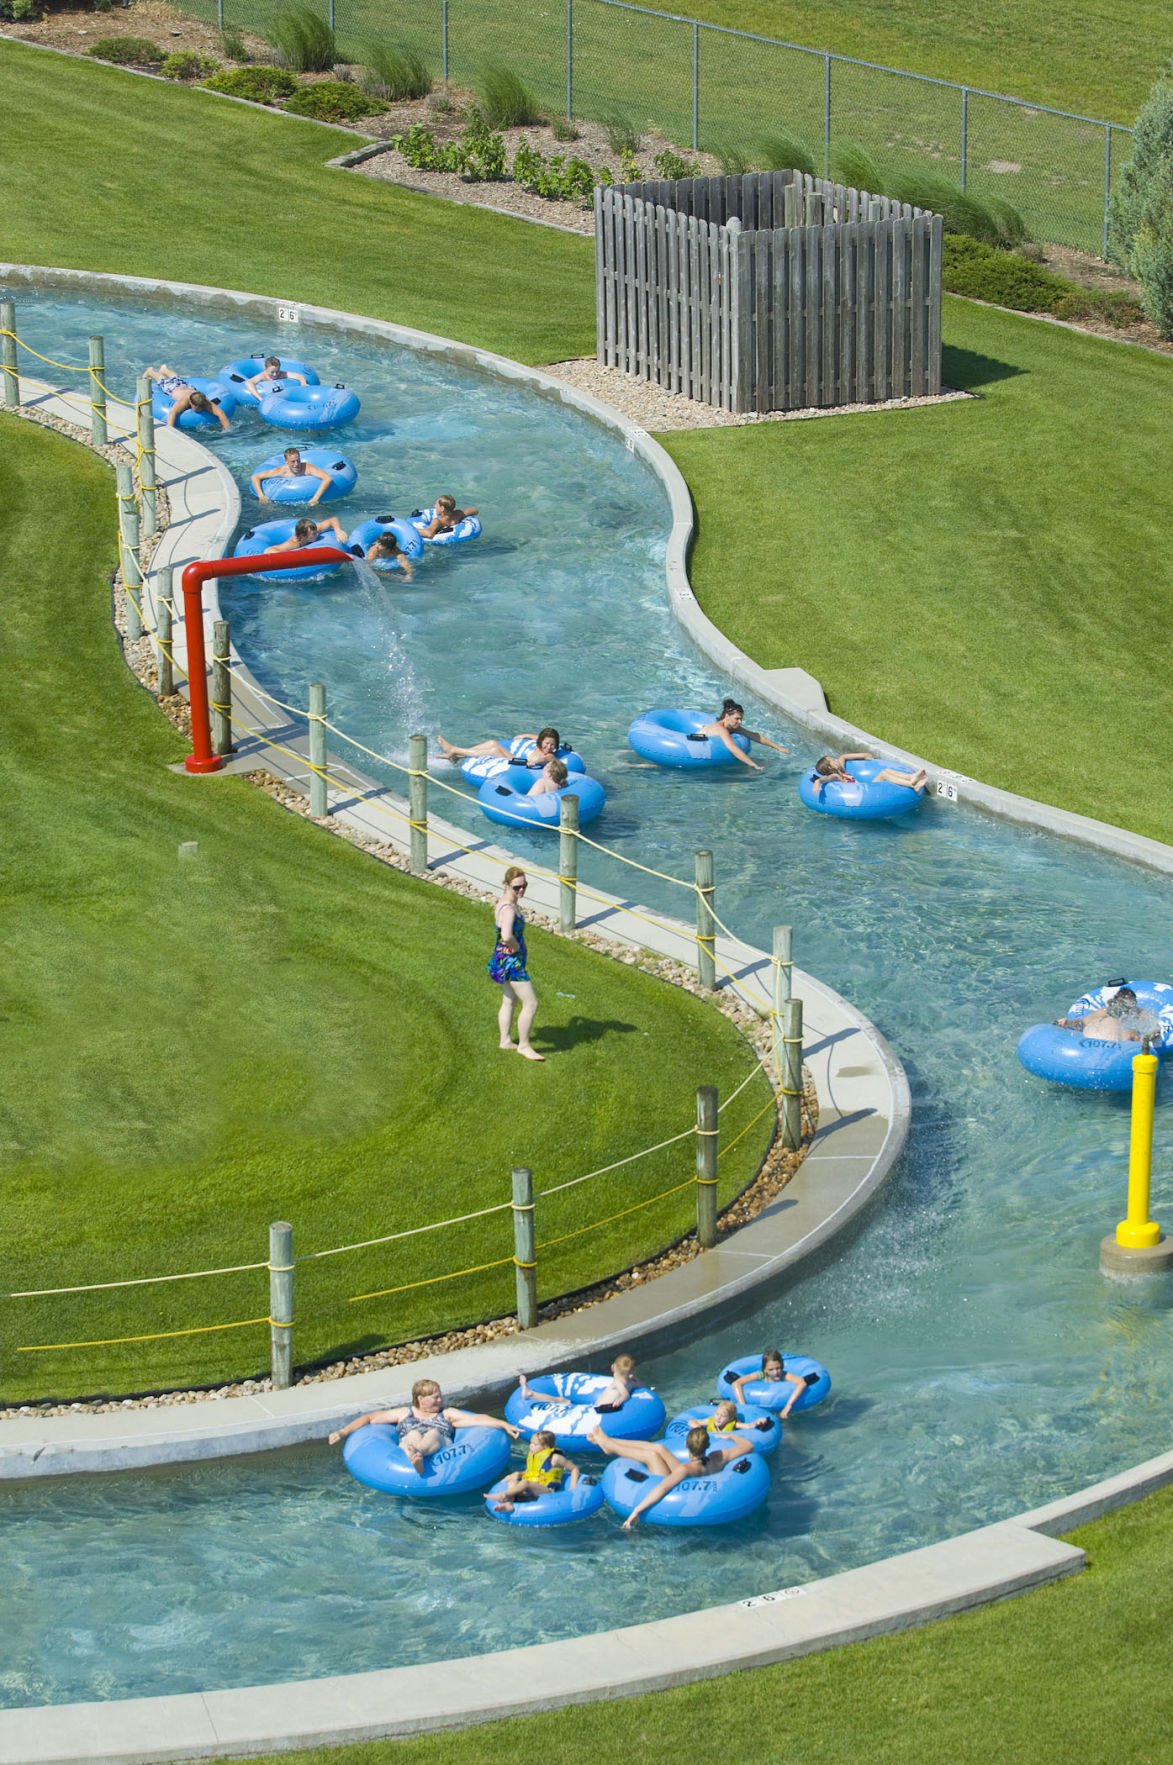 Grand Island Oasis Water Park